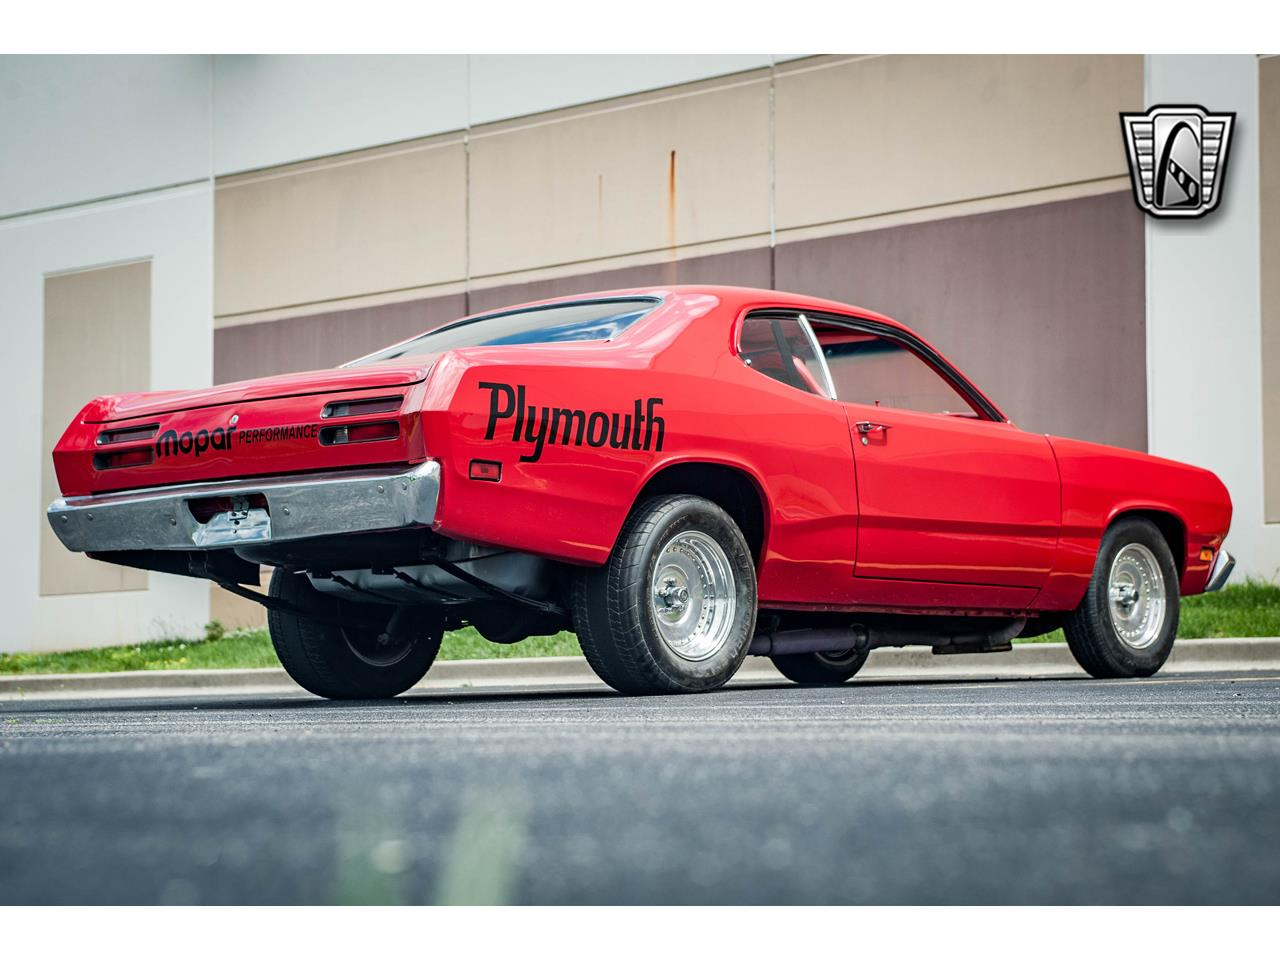 Large Picture of Classic '71 Plymouth Duster located in O'Fallon Illinois - $30,000.00 - QB9U